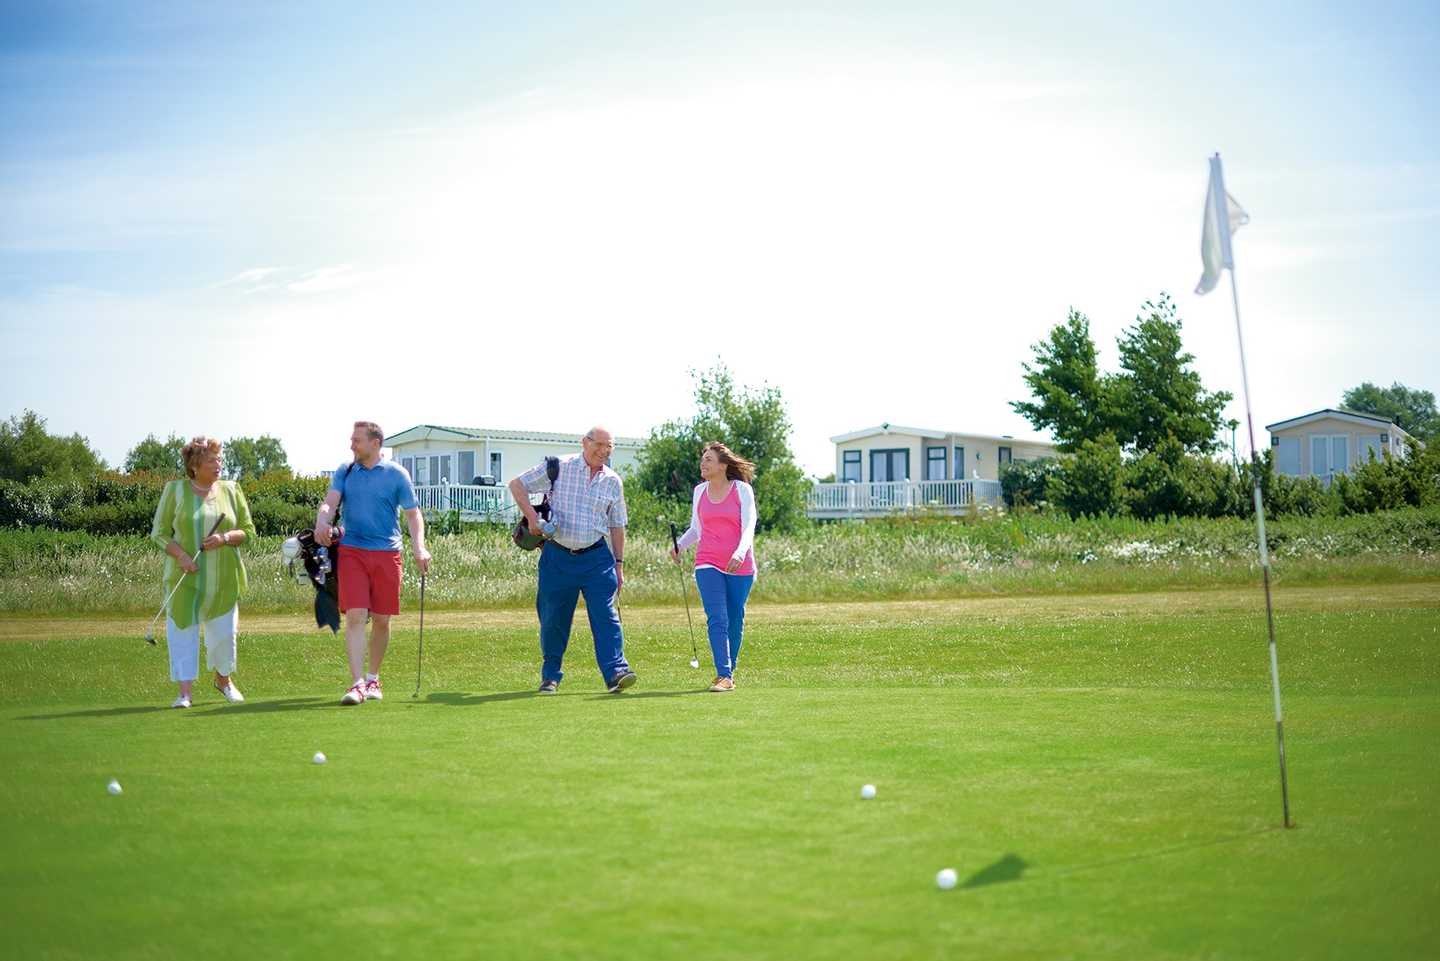 Guests playing a round of golf on the 9-hole golf course at Allhallows